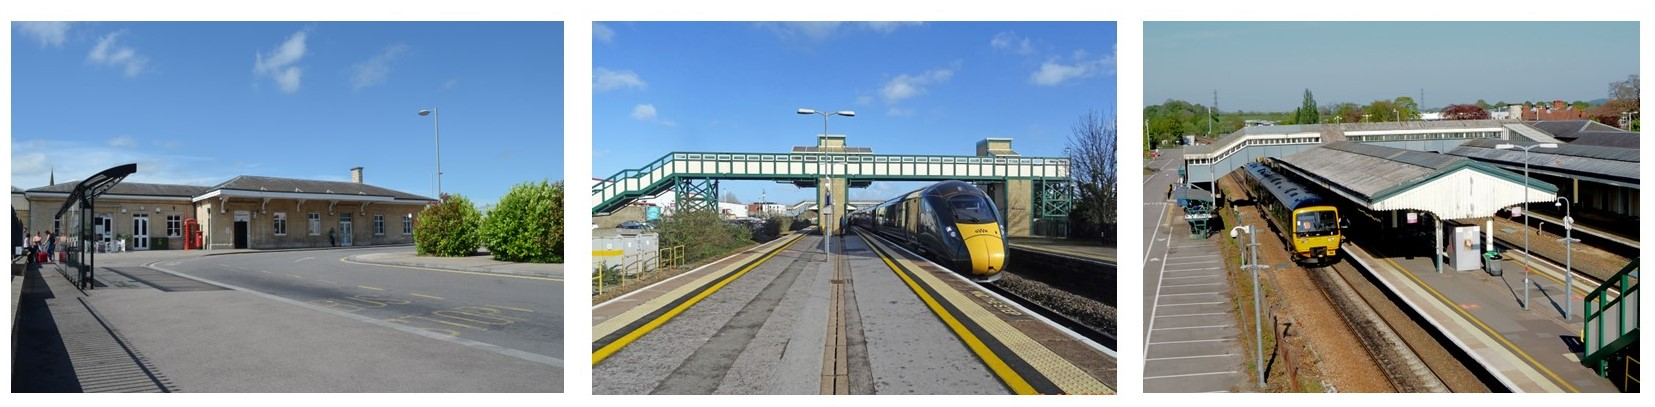 Three views of Chippenham Station today showing the forecourt, platform and new footbridge and current trains at the station